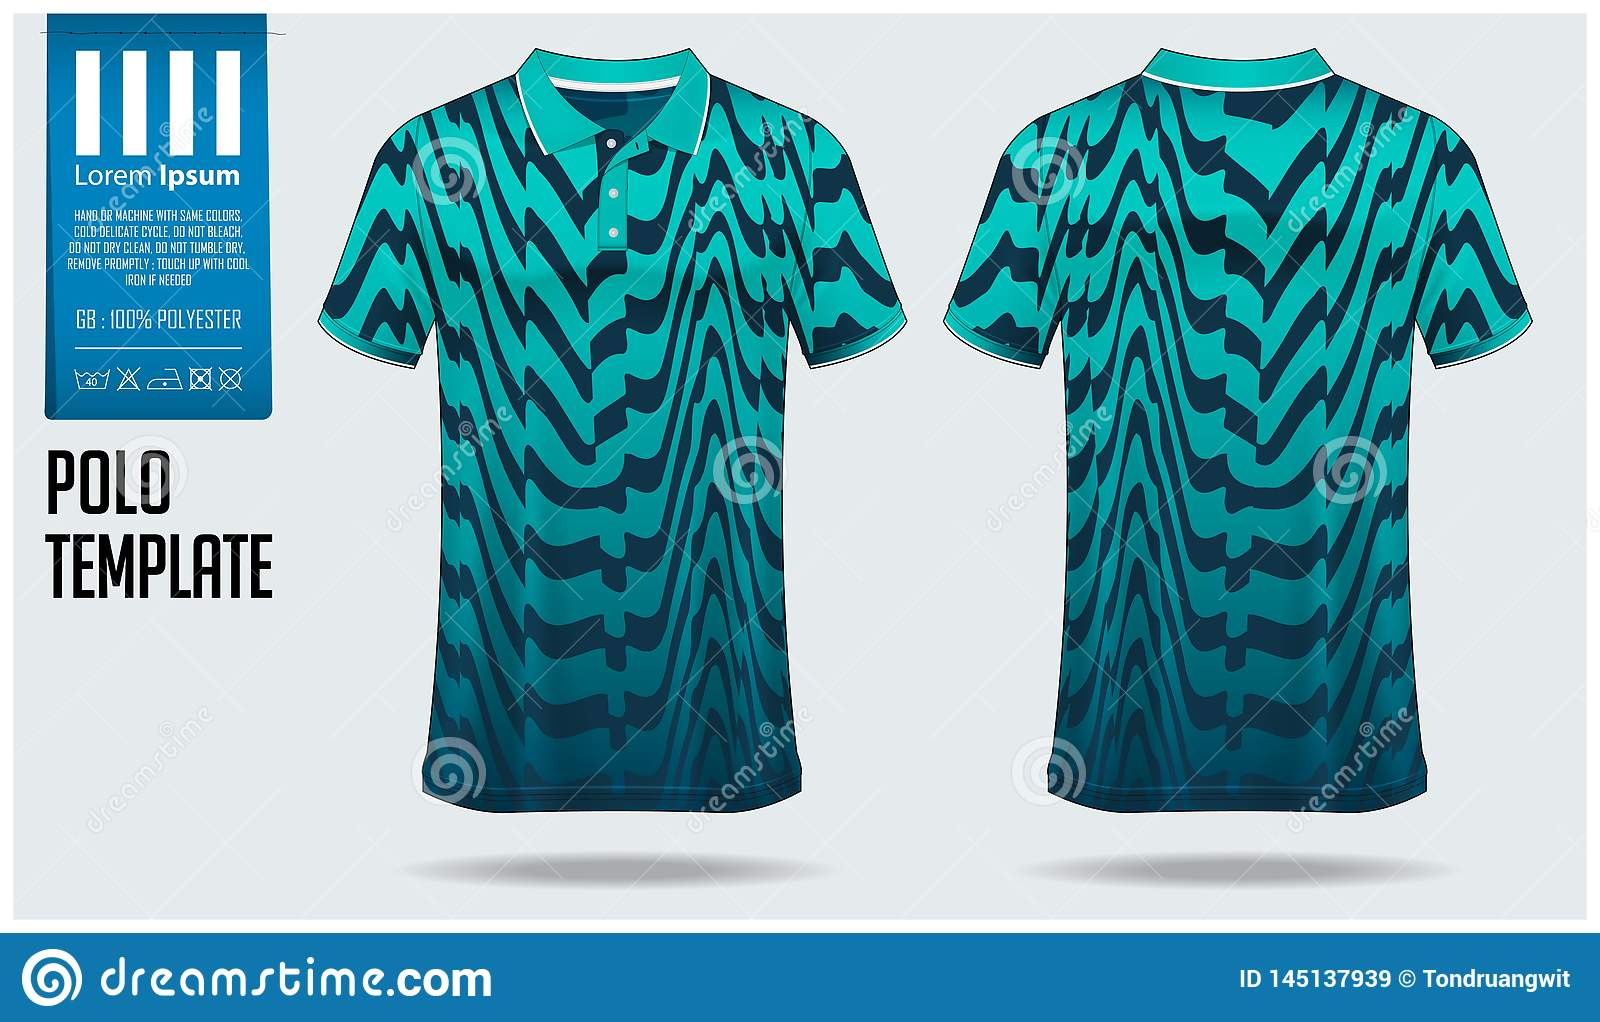 a1391be5f Polo t-shirt mockup template design for soccer jersey, football kit or  sportswear.